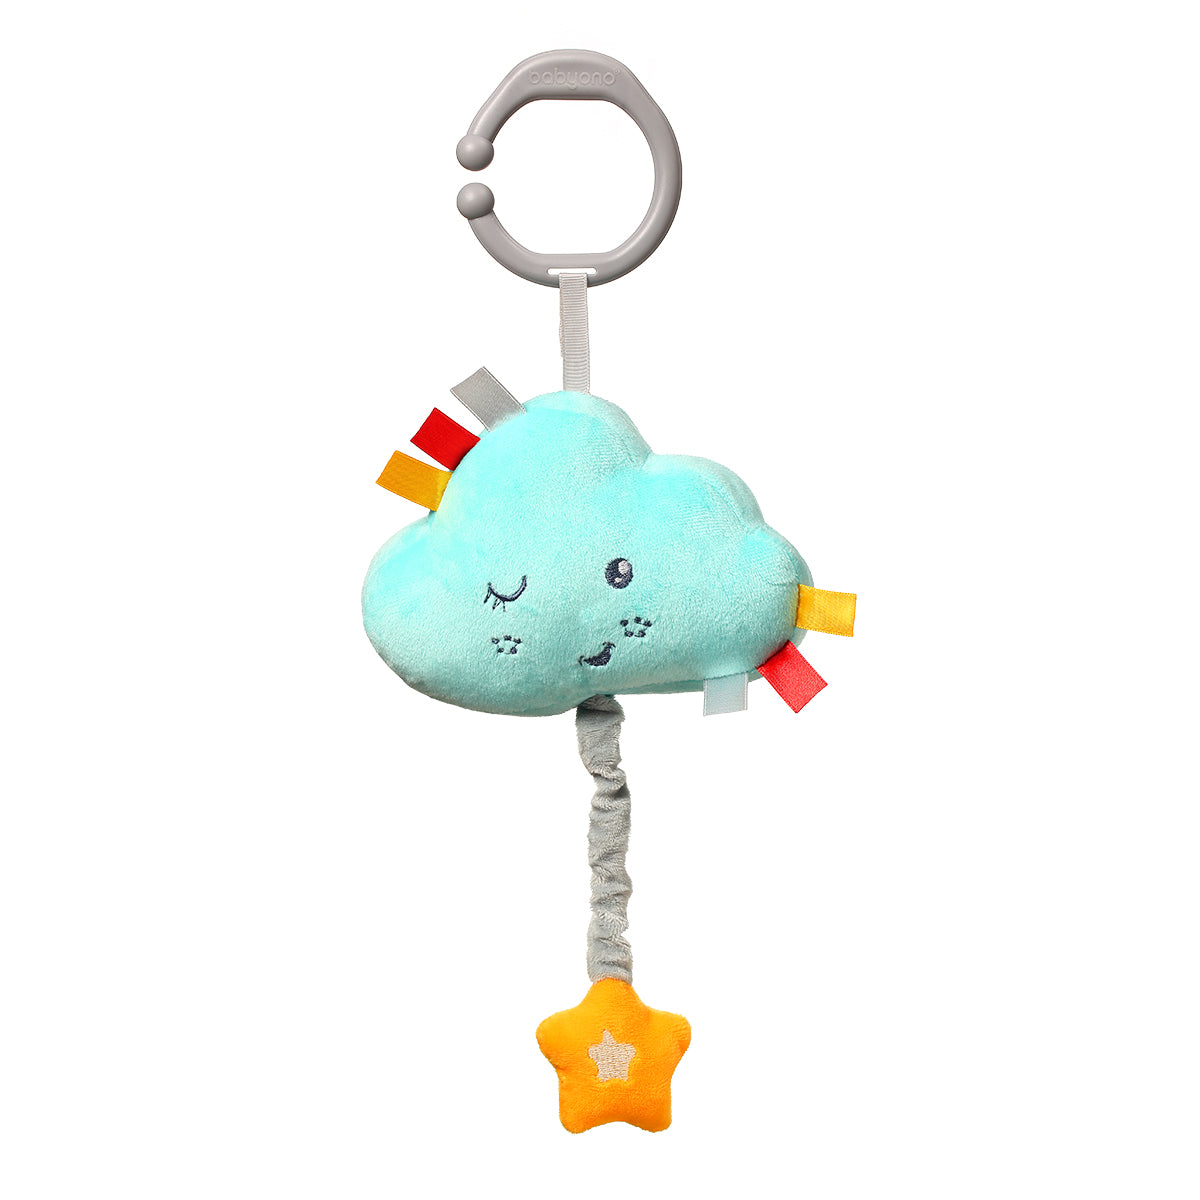 Musical Pull Toy for Babies, Cloud